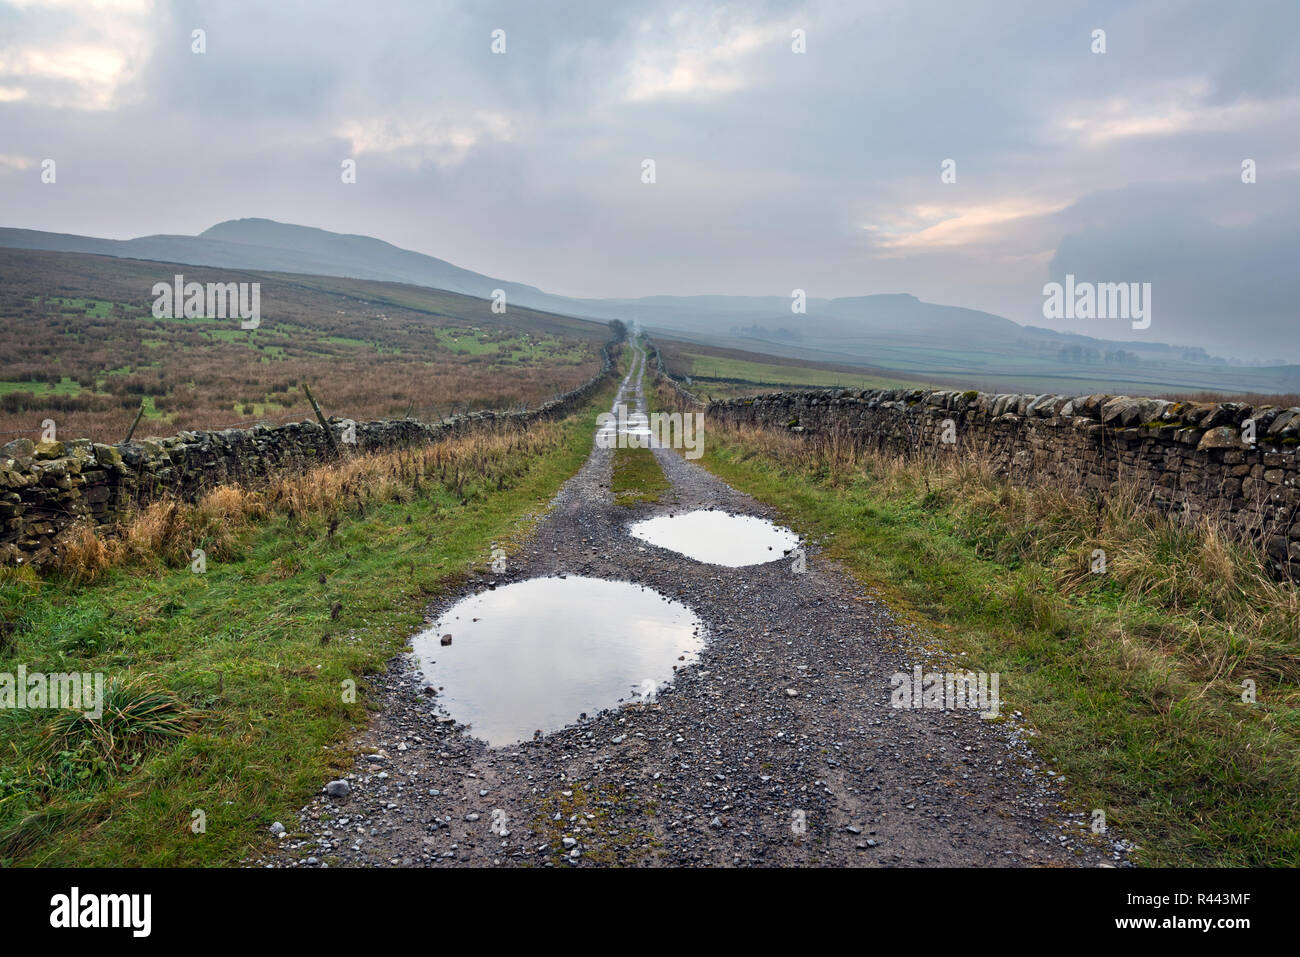 The historic Cam High Road, a Roman road which has also served as a drovers and packhorse route, Bainbridge, Yorkshire Dales National Park, UK Stock Photo